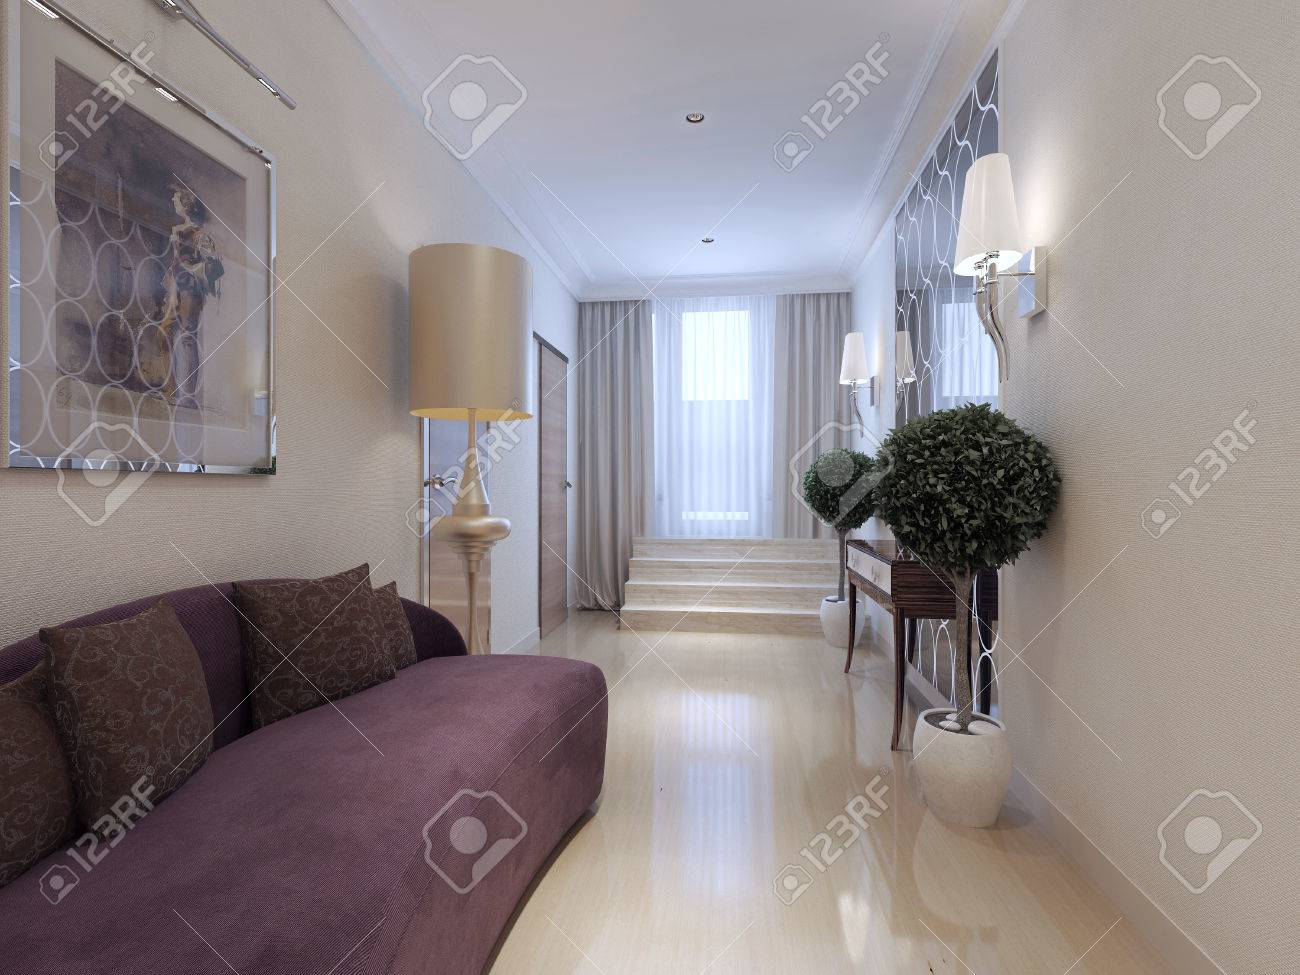 Corridor art deco style d render stock photo picture and